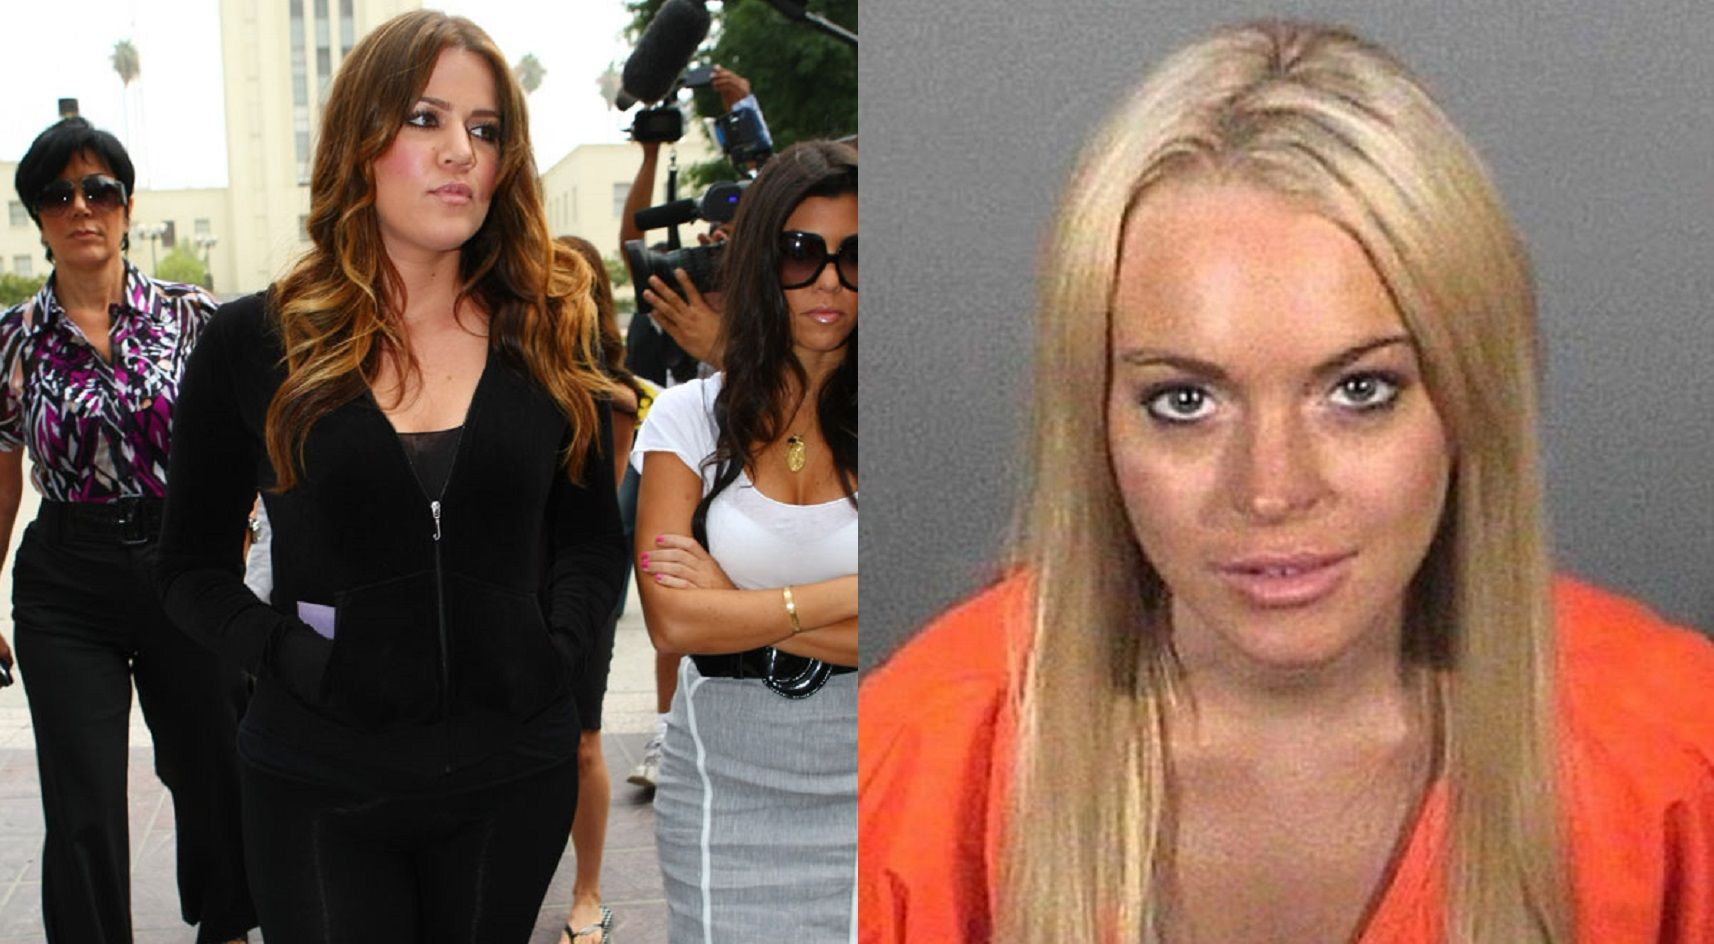 10 Ridiculously Short Celebrity Jail Sentences